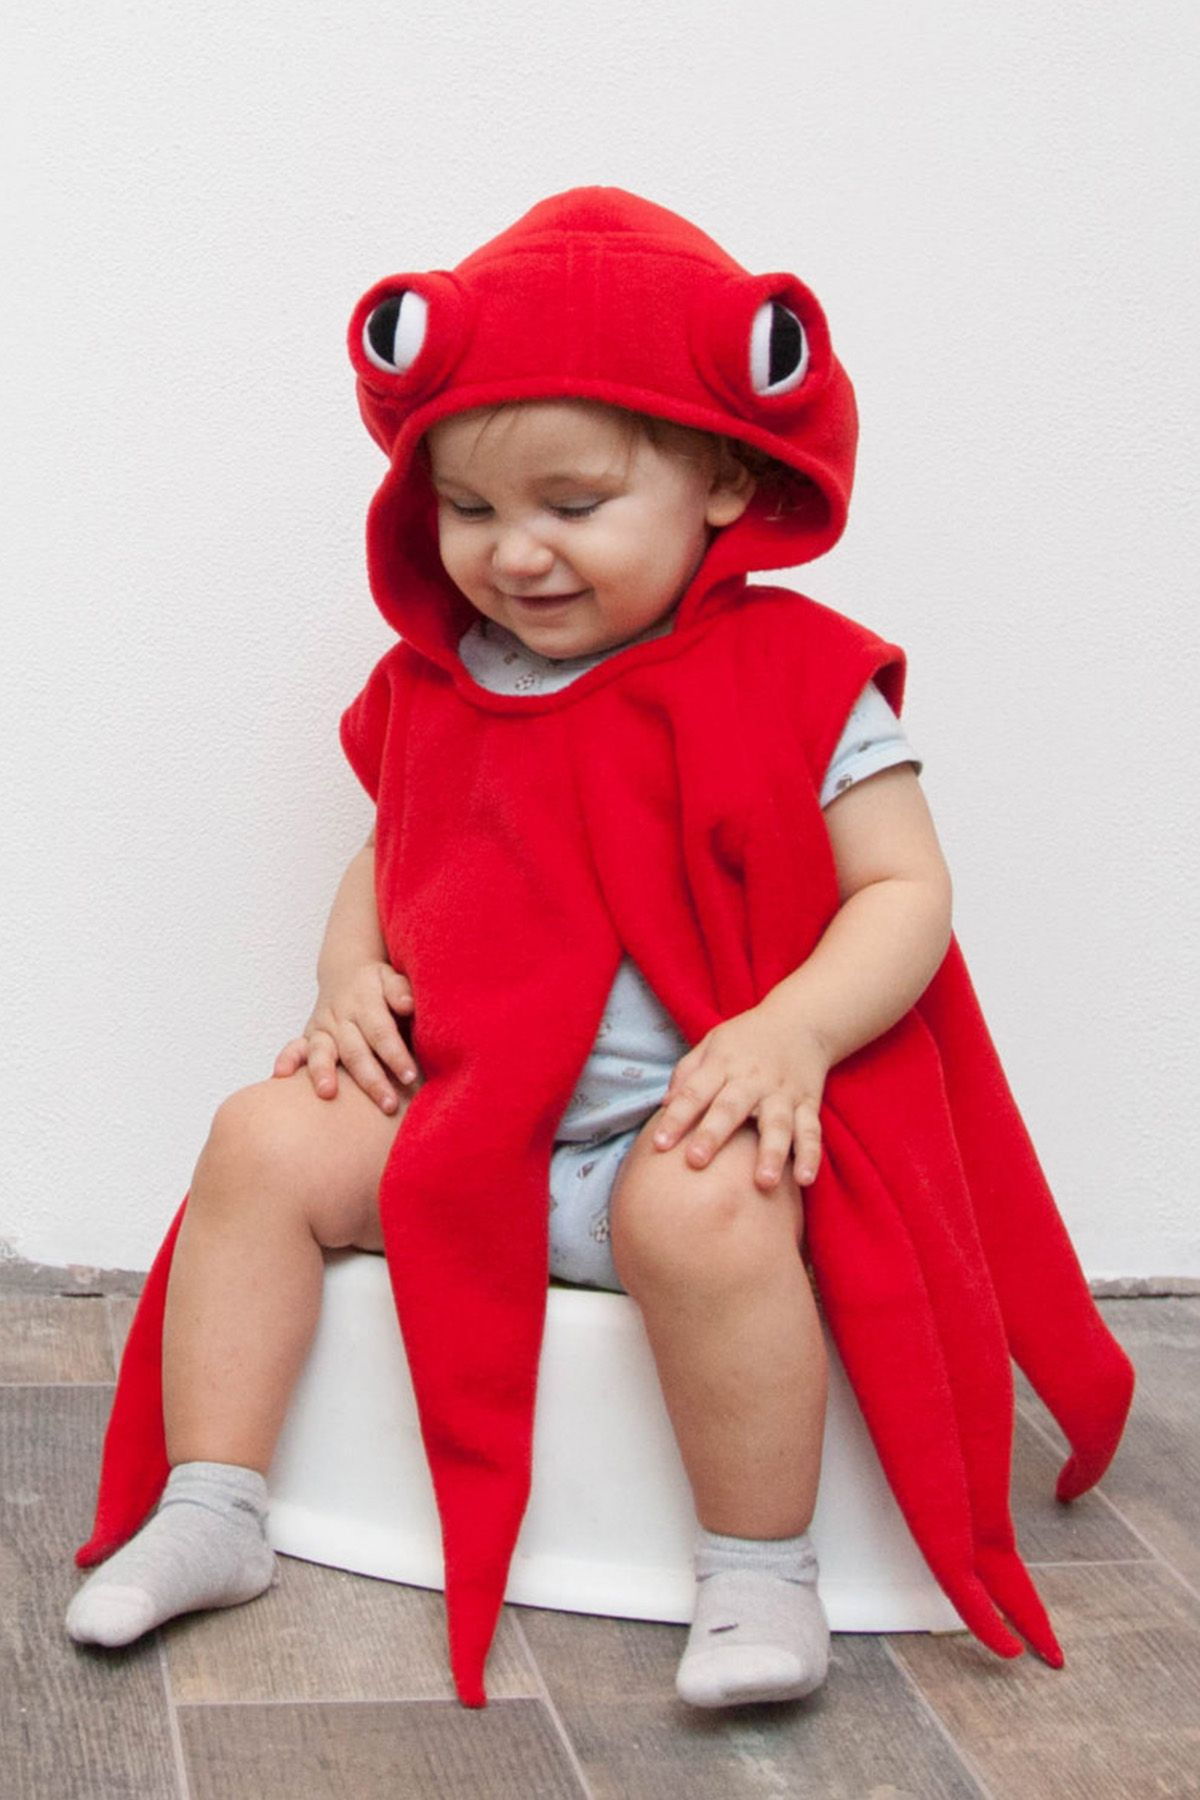 23 Best Boys' Halloween Costumes for 2019 - Cool Costume